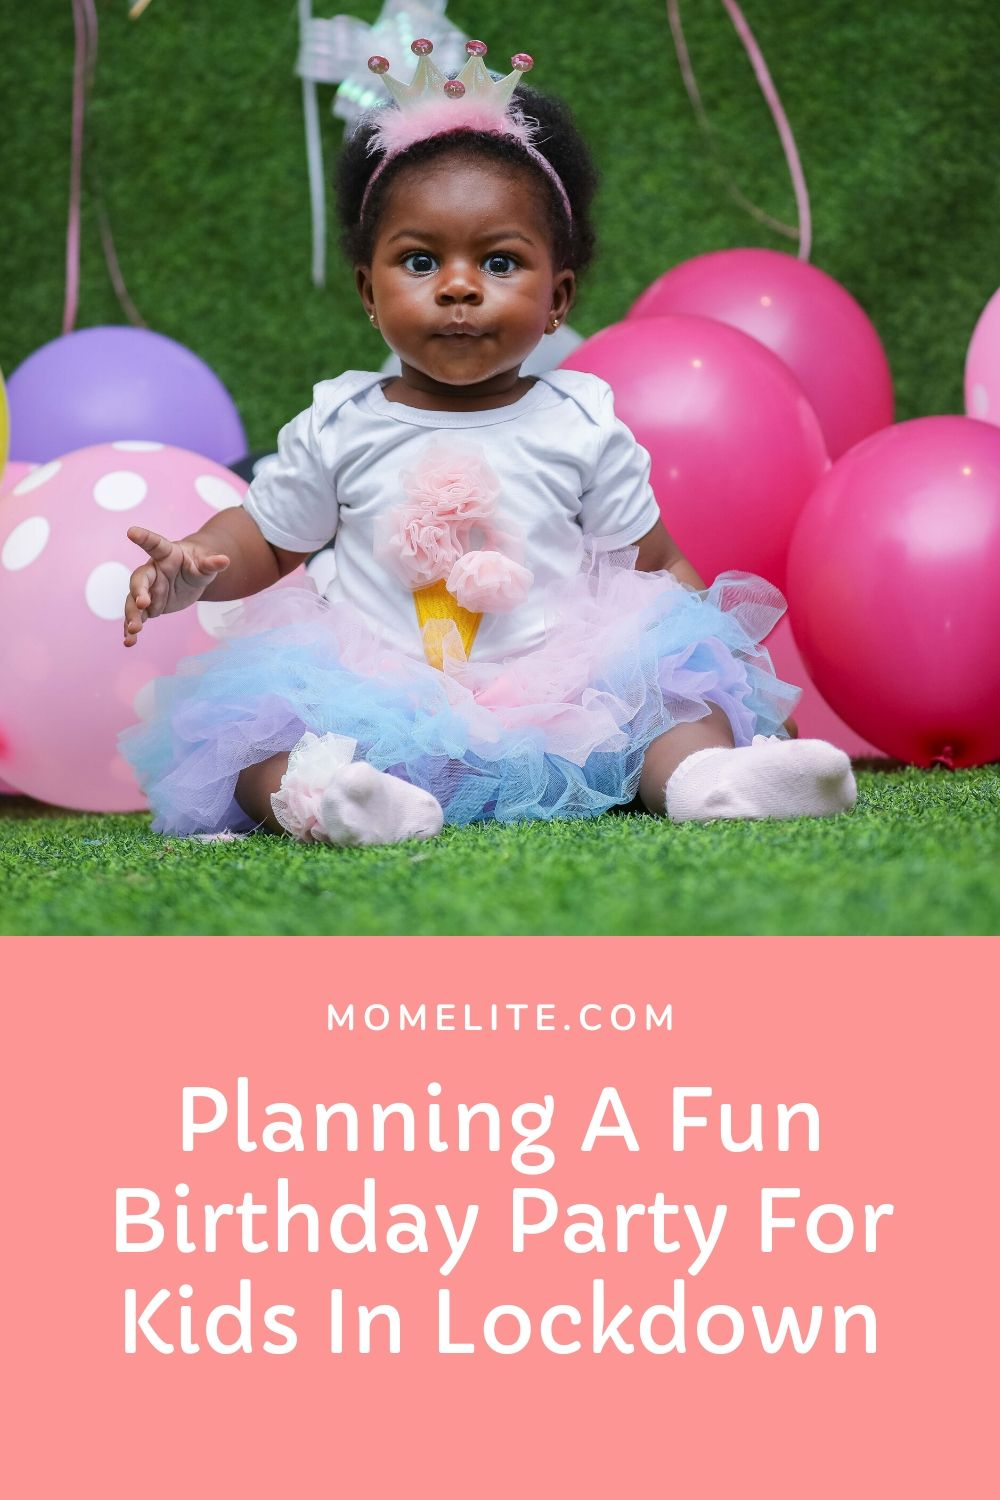 Planning A Fun Birthday Party For Kids In Lockdown